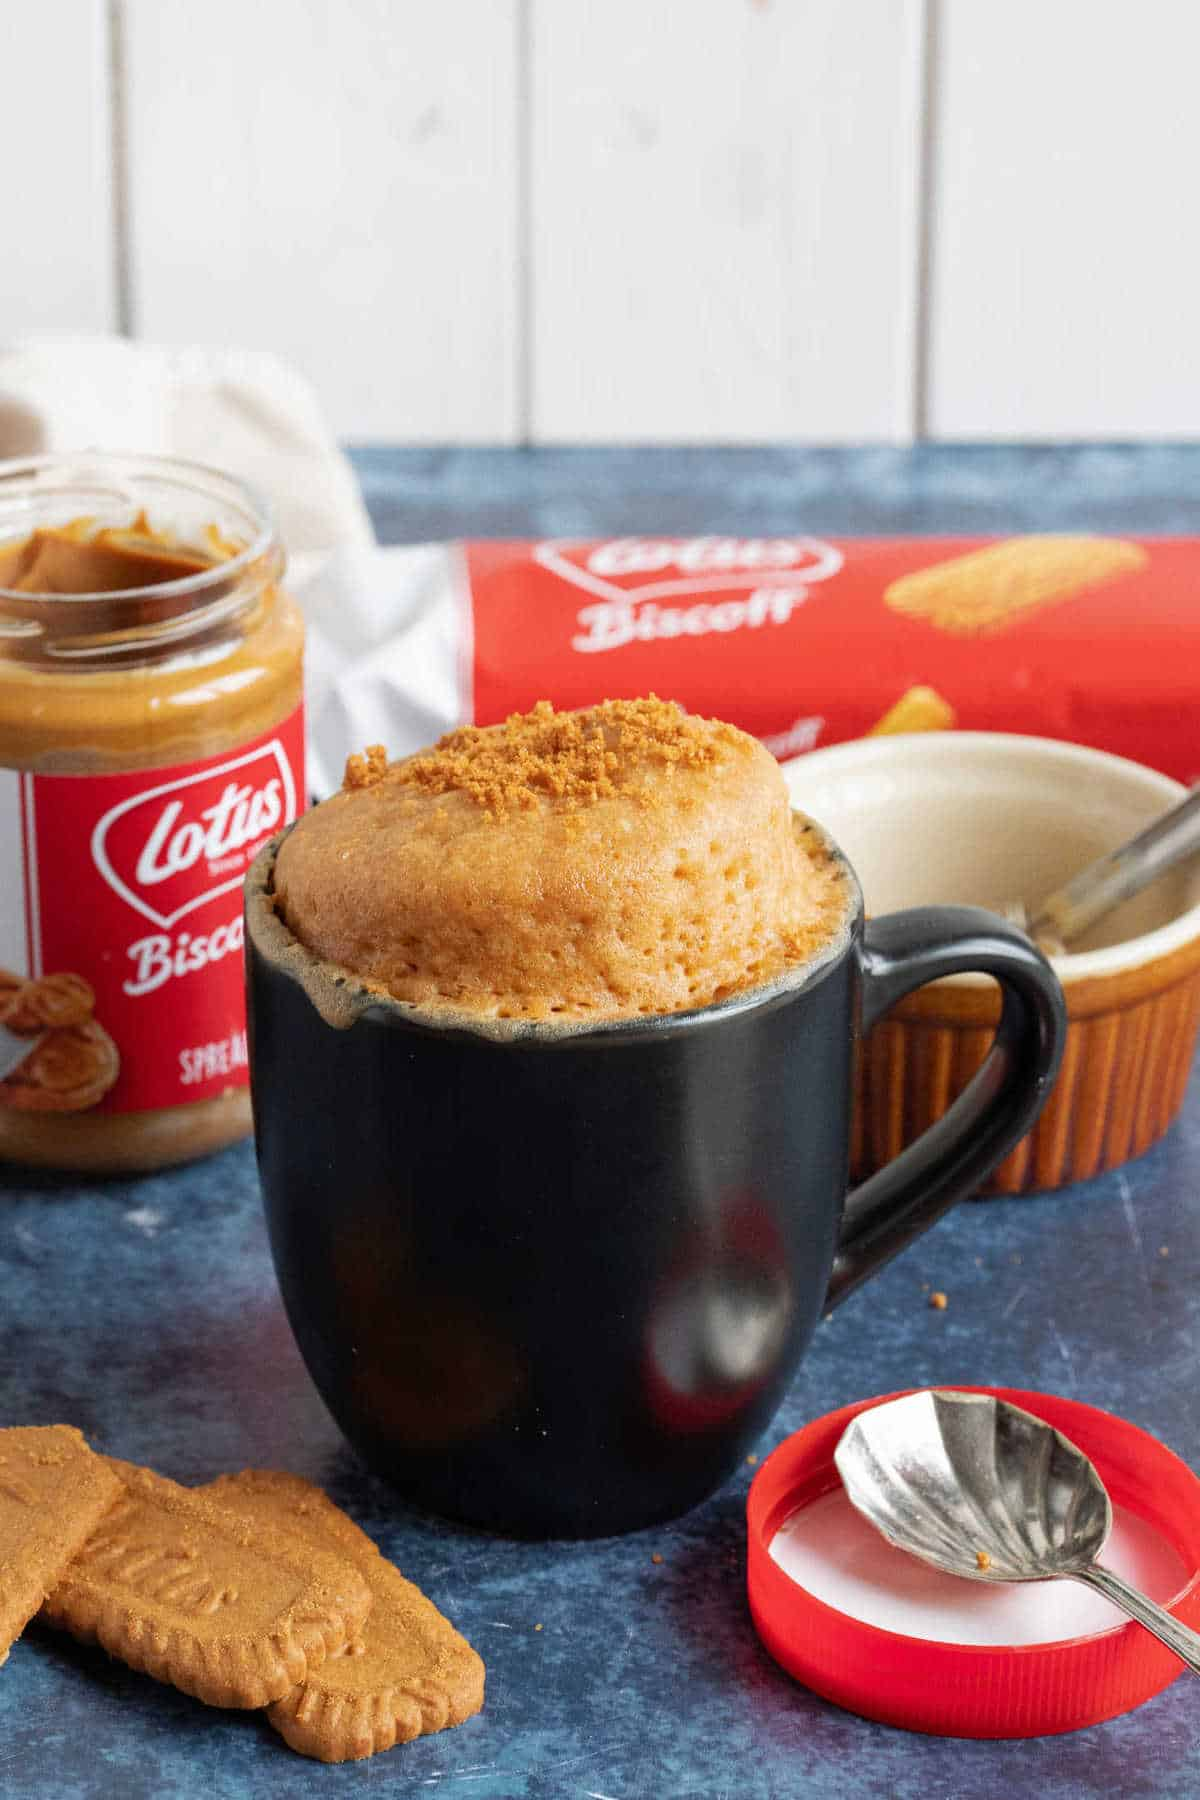 Mug cake with biscoff spread jar.